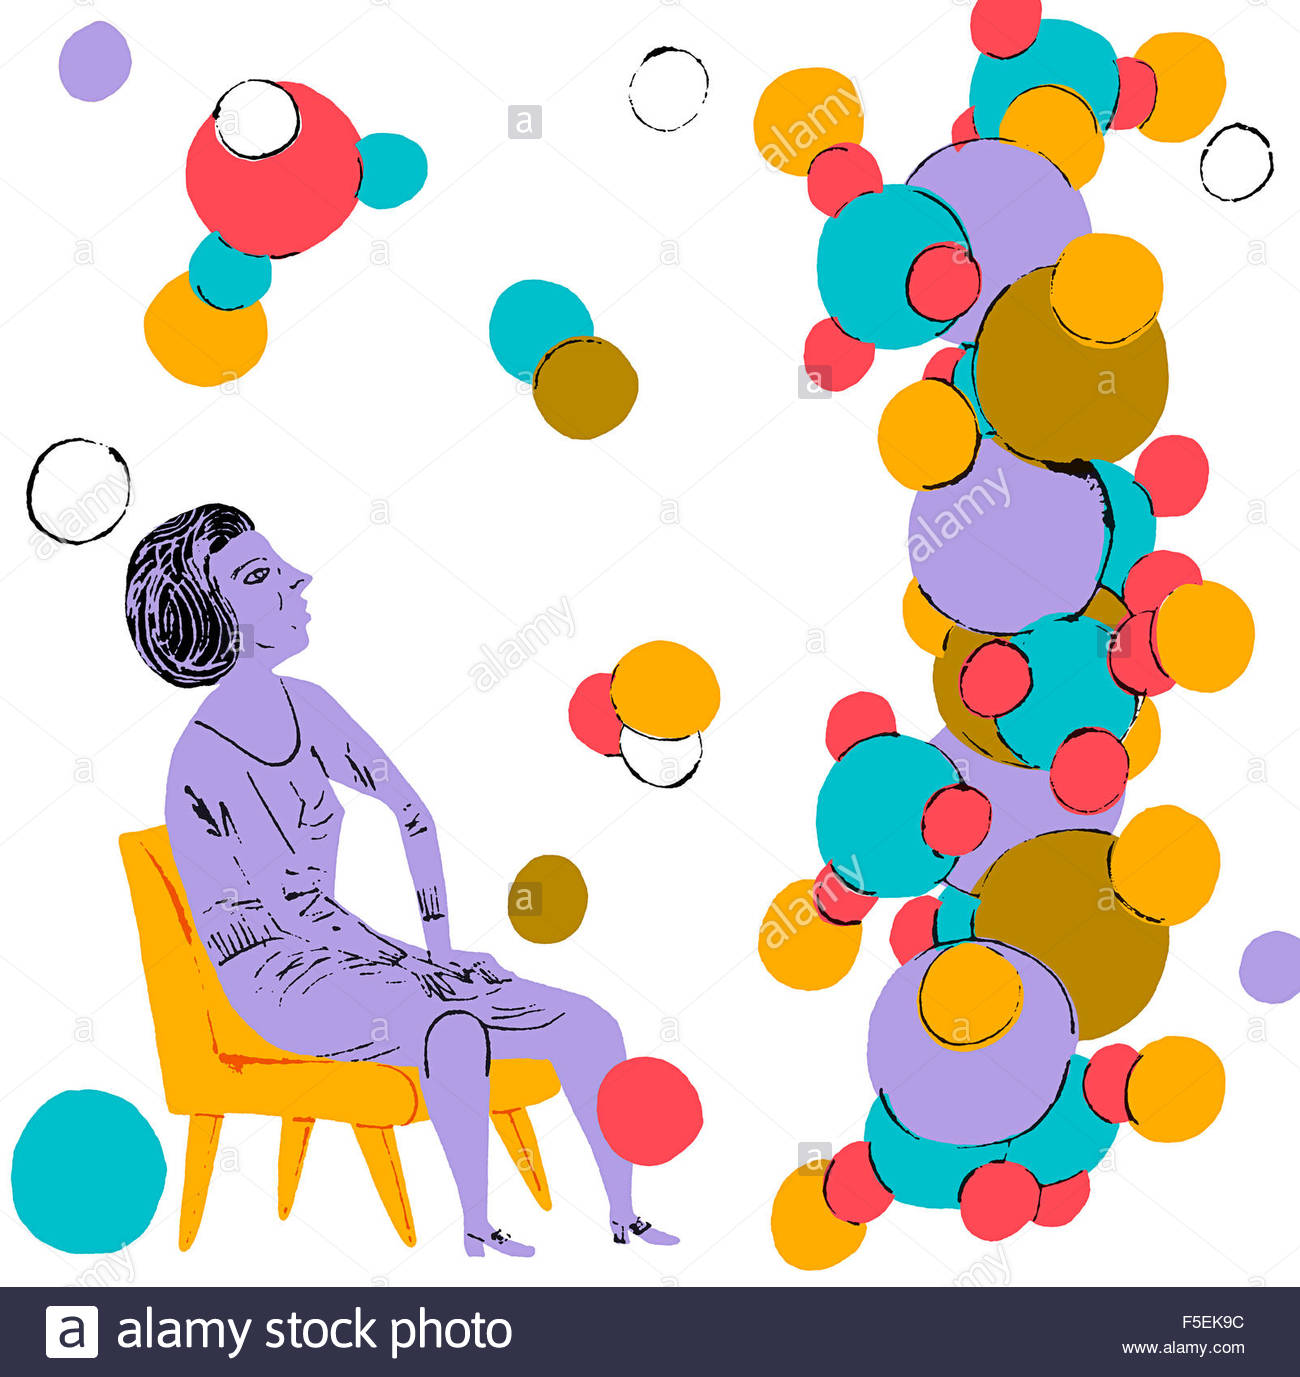 Scientist looking up at molecular structure - Stock Image